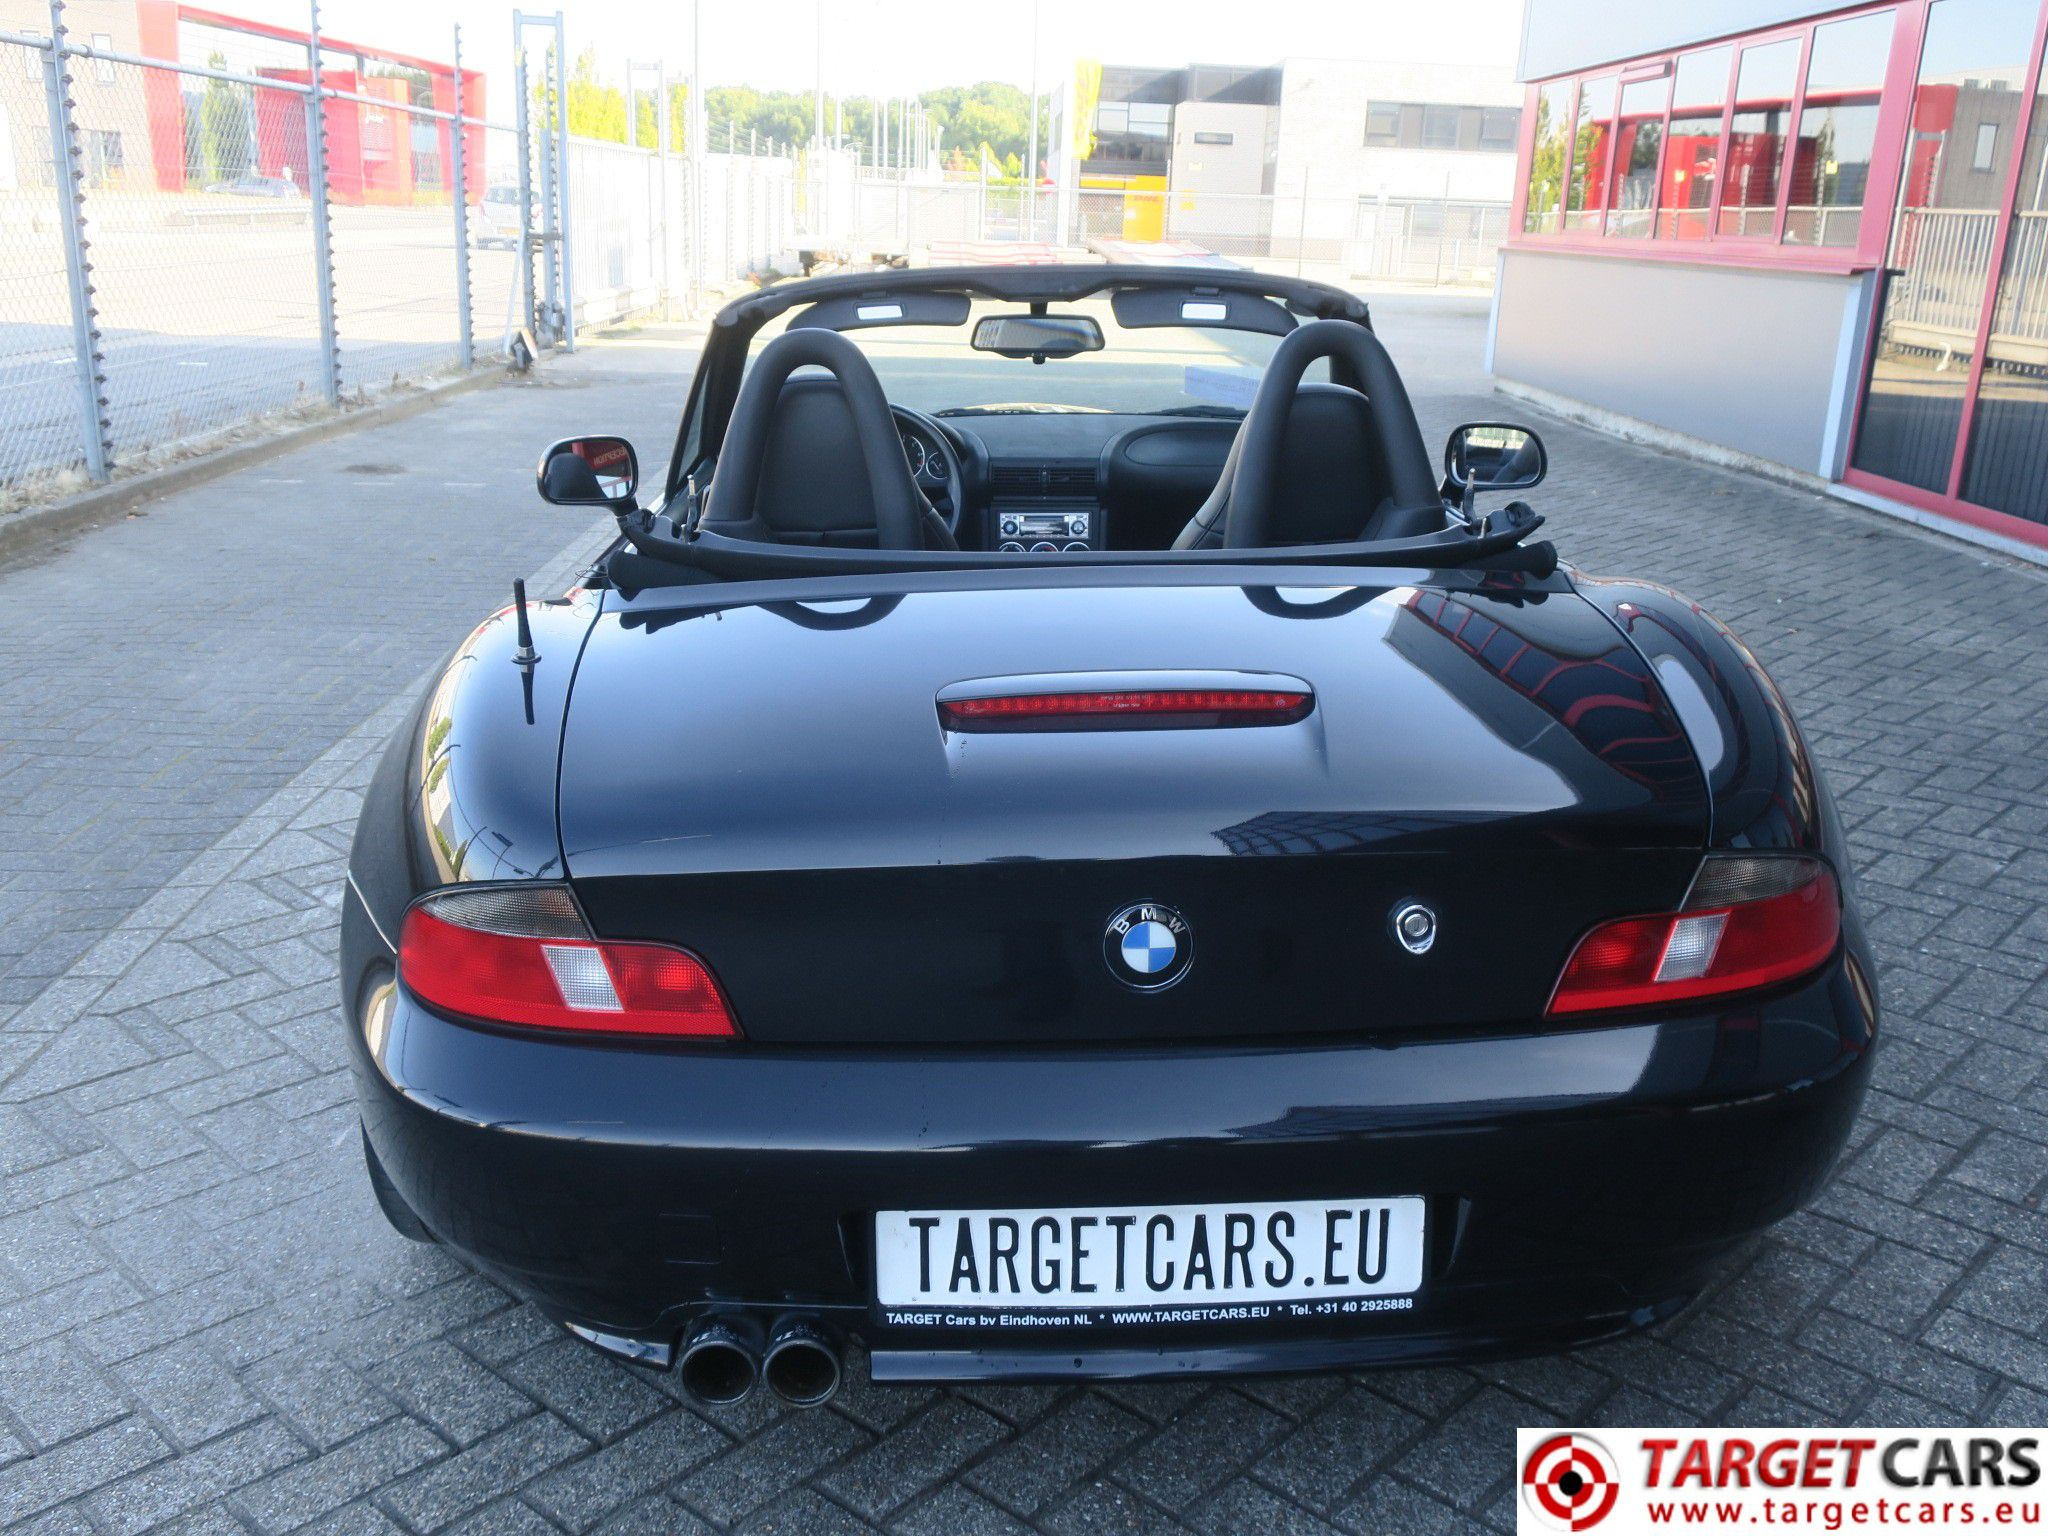 BMW Z3 ROADSTER 2 0L 150HP E36 CABRIO 07-99 BLACK 113689KM LHD